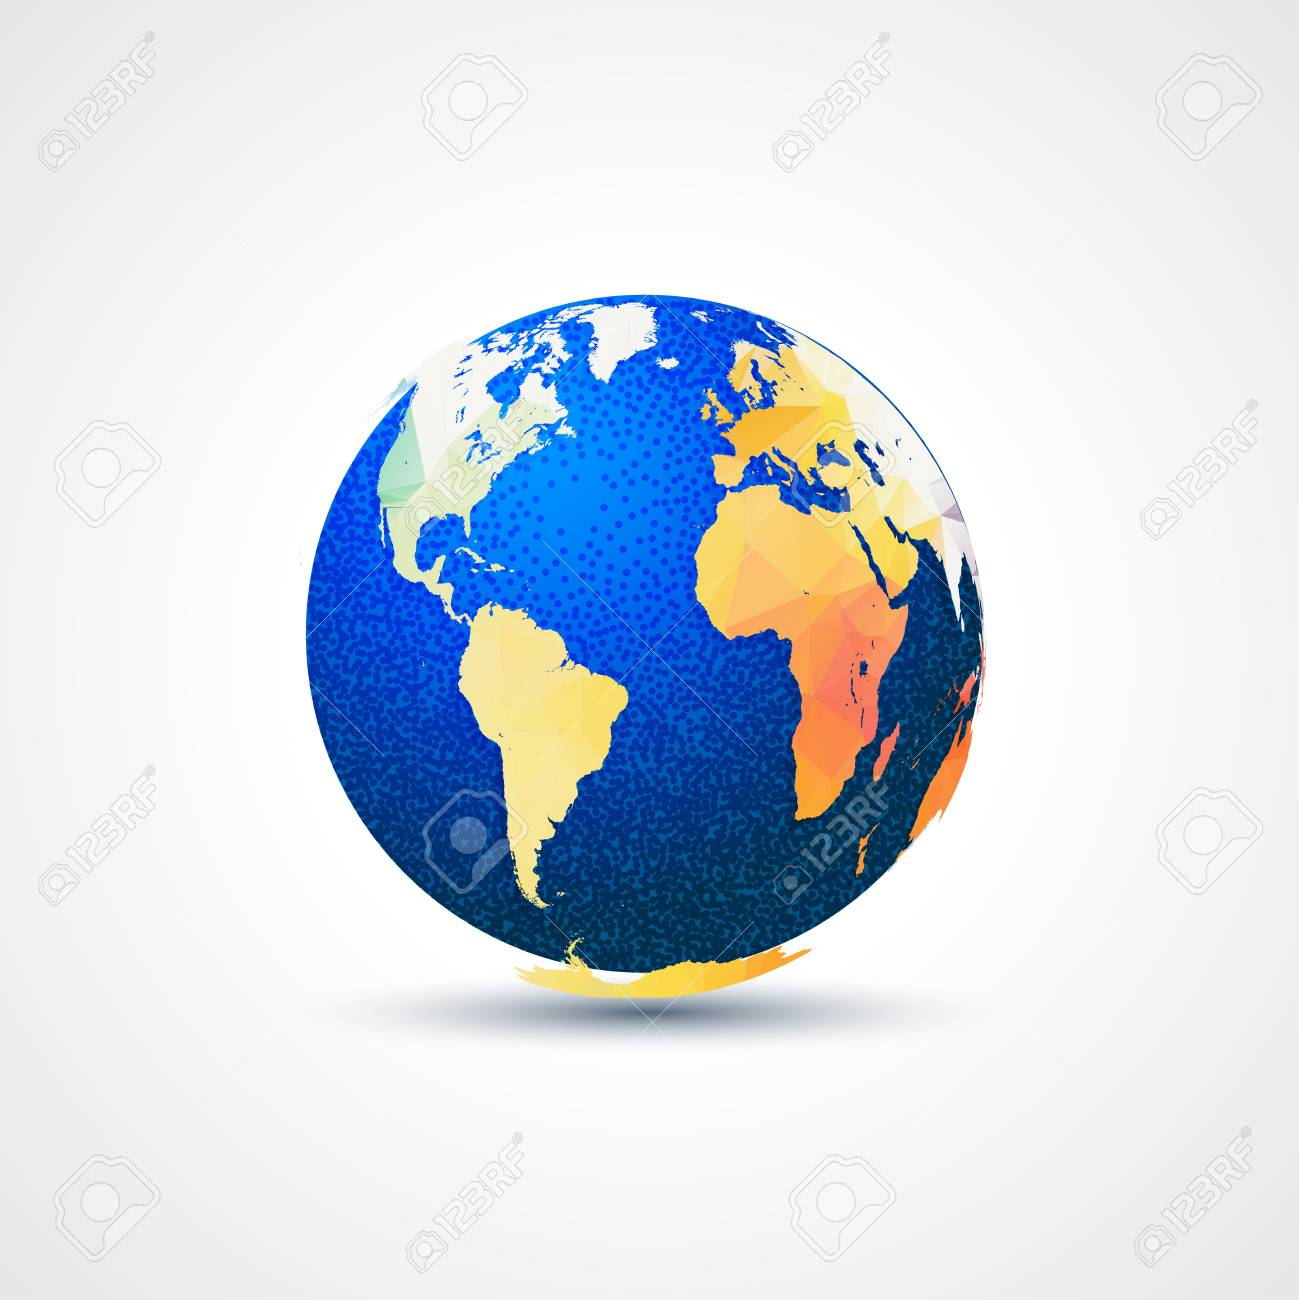 Trendy triangular world globe map amrica frica y europa foto de archivo trendy triangular world globe map amrica frica y europa concepto de comunicacin global gumiabroncs Image collections